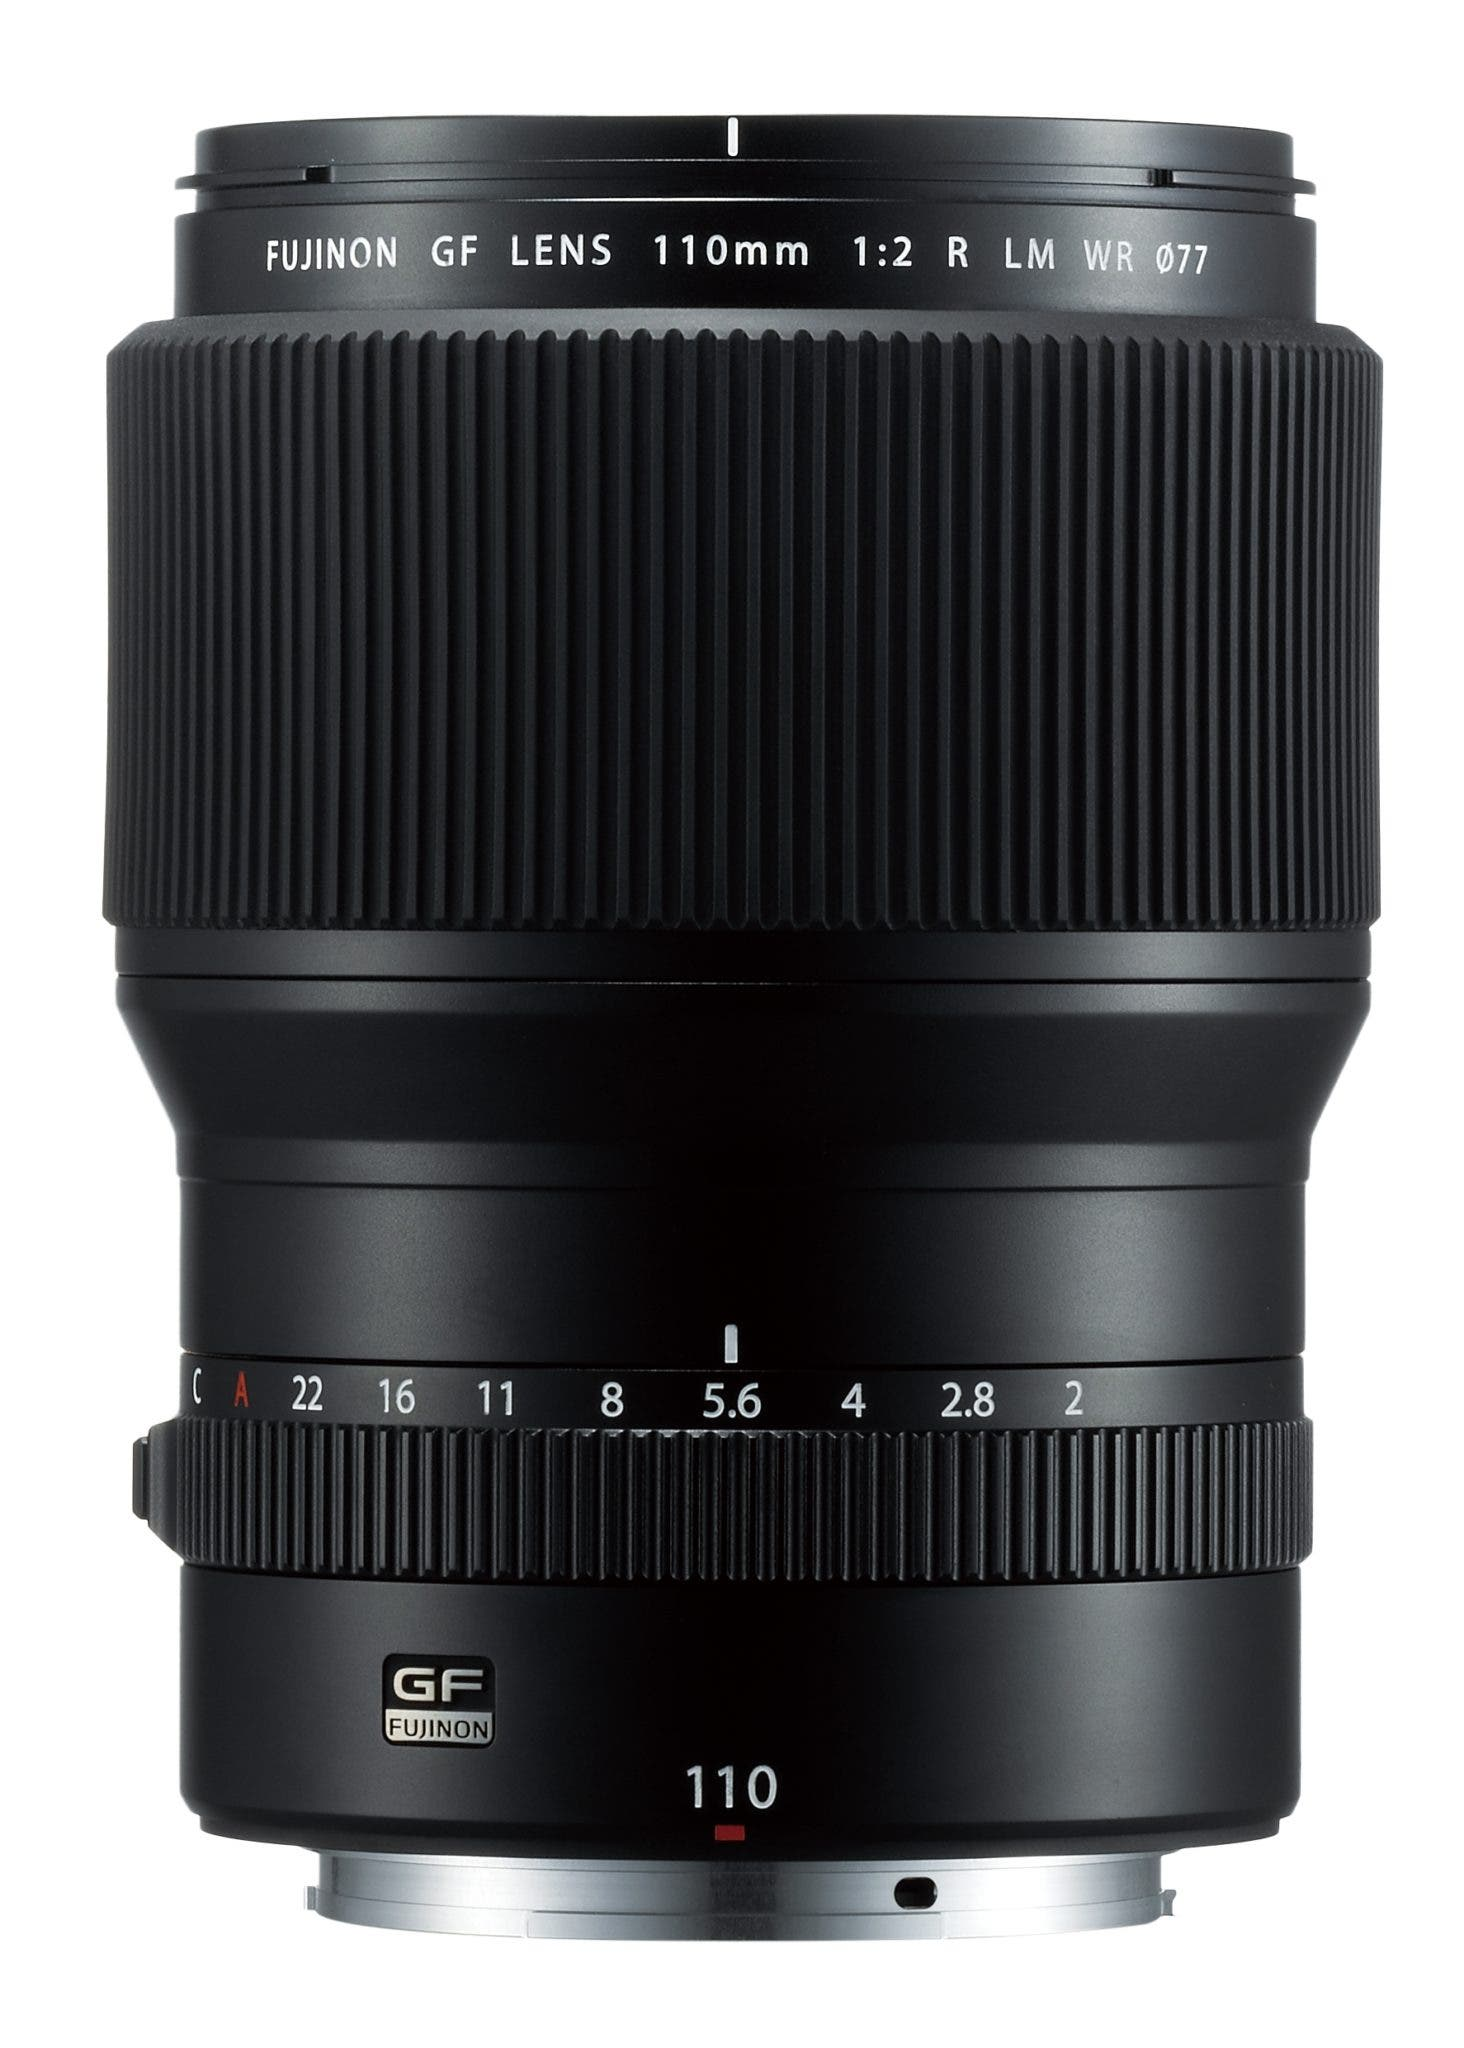 Fujifilm Adds the FUJINON 110mm F2 R LM WR and 23mm F4 R LM WR Lenses to the GFX Lens Lineup